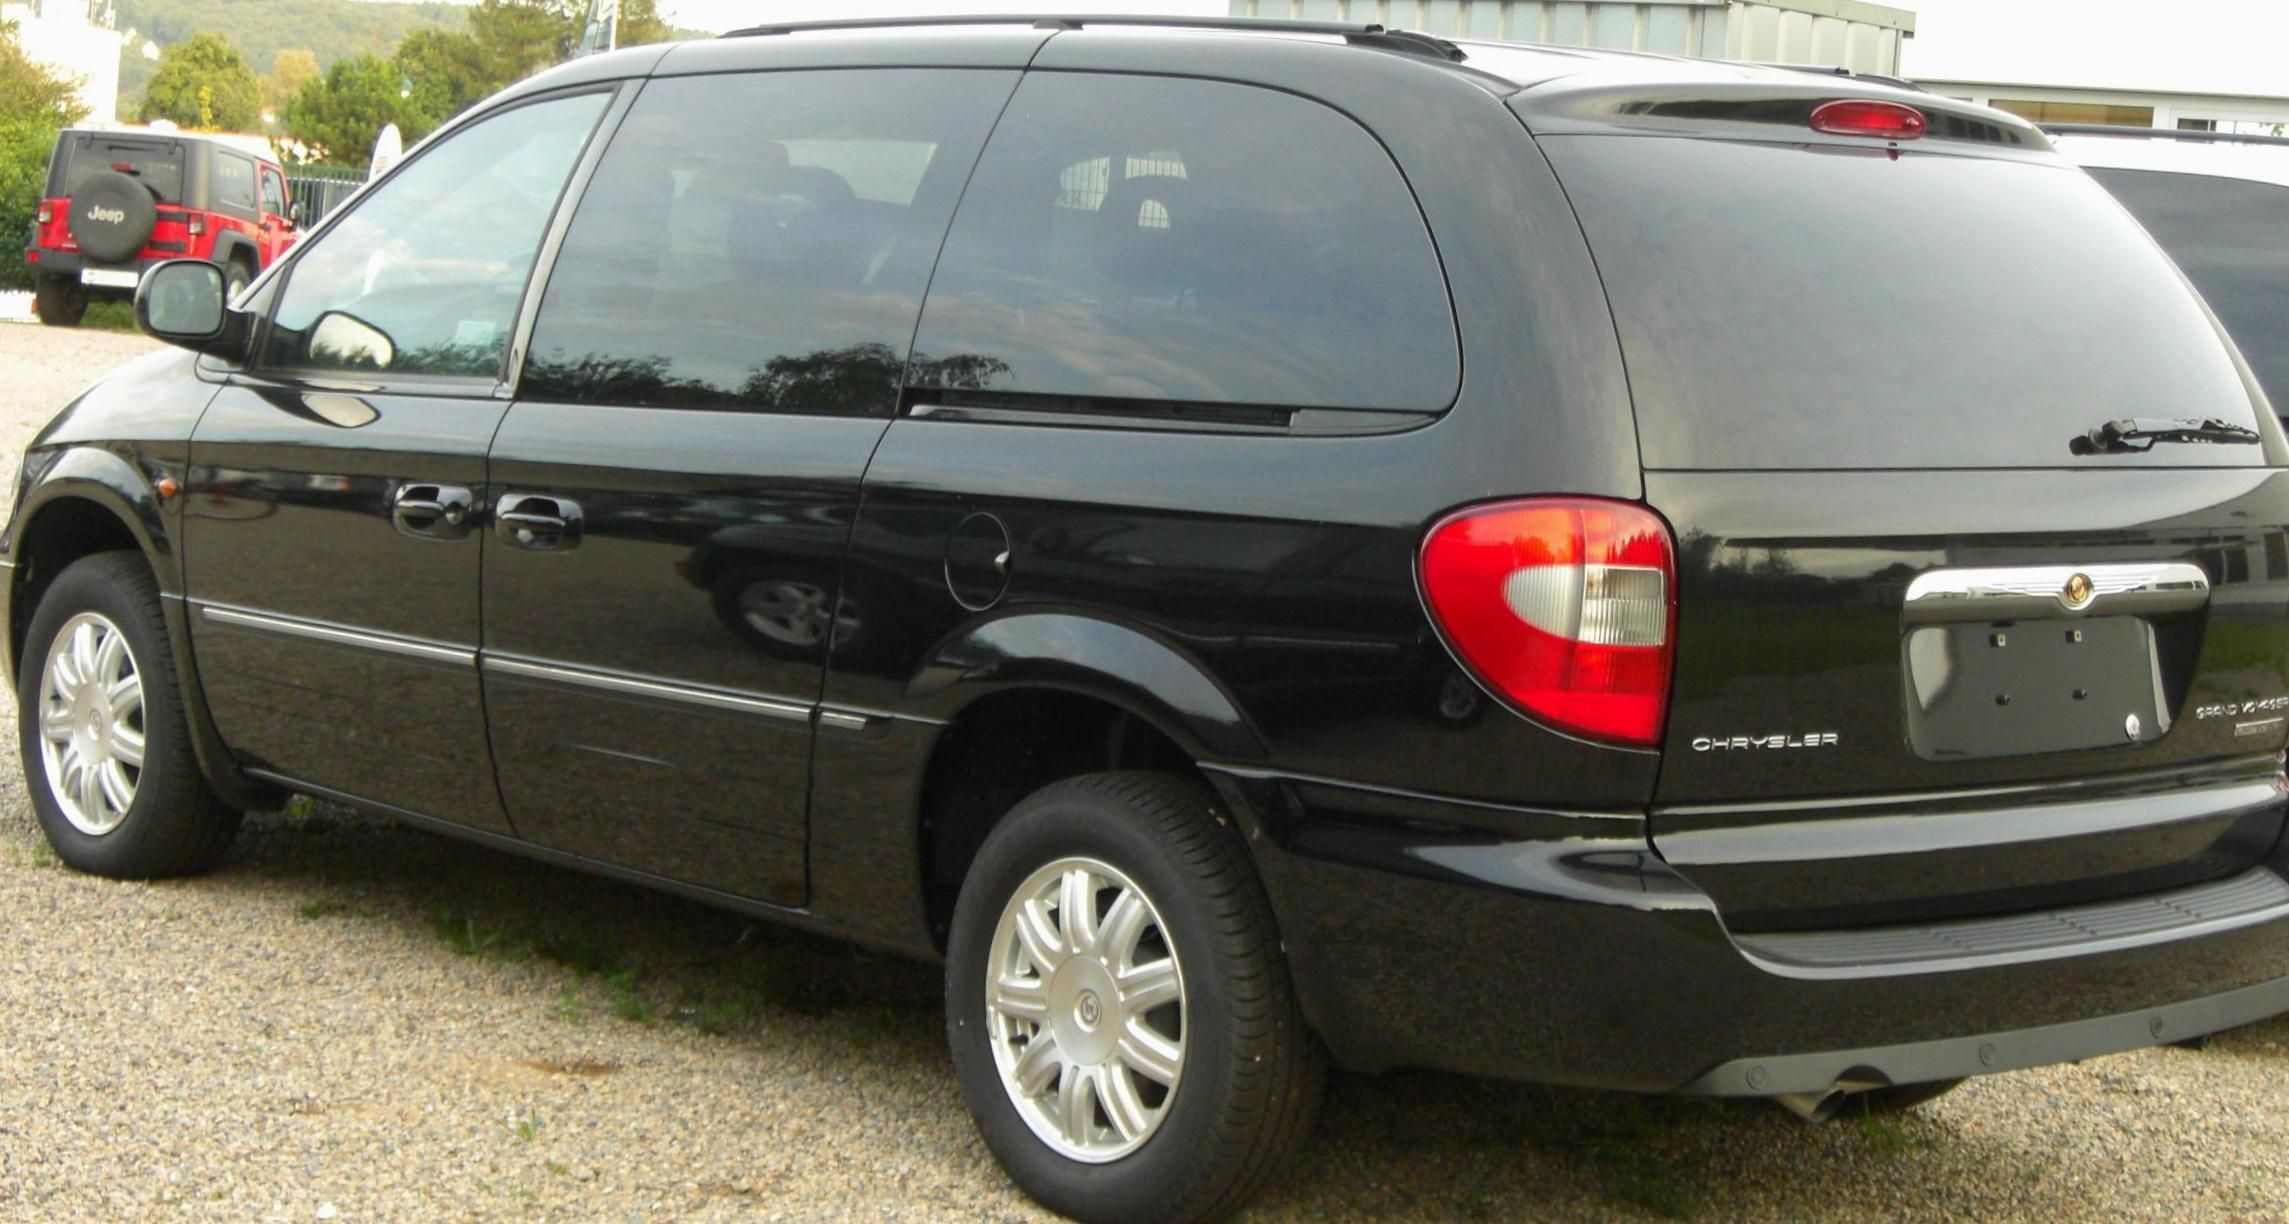 Chrysler Grand Voyager Photos And Specs Photo Grand Voyager Chrysler New And 26 Perfect Photos Of Chrysler Grand Voyager Chrysler Chrysler Voyager Voyage